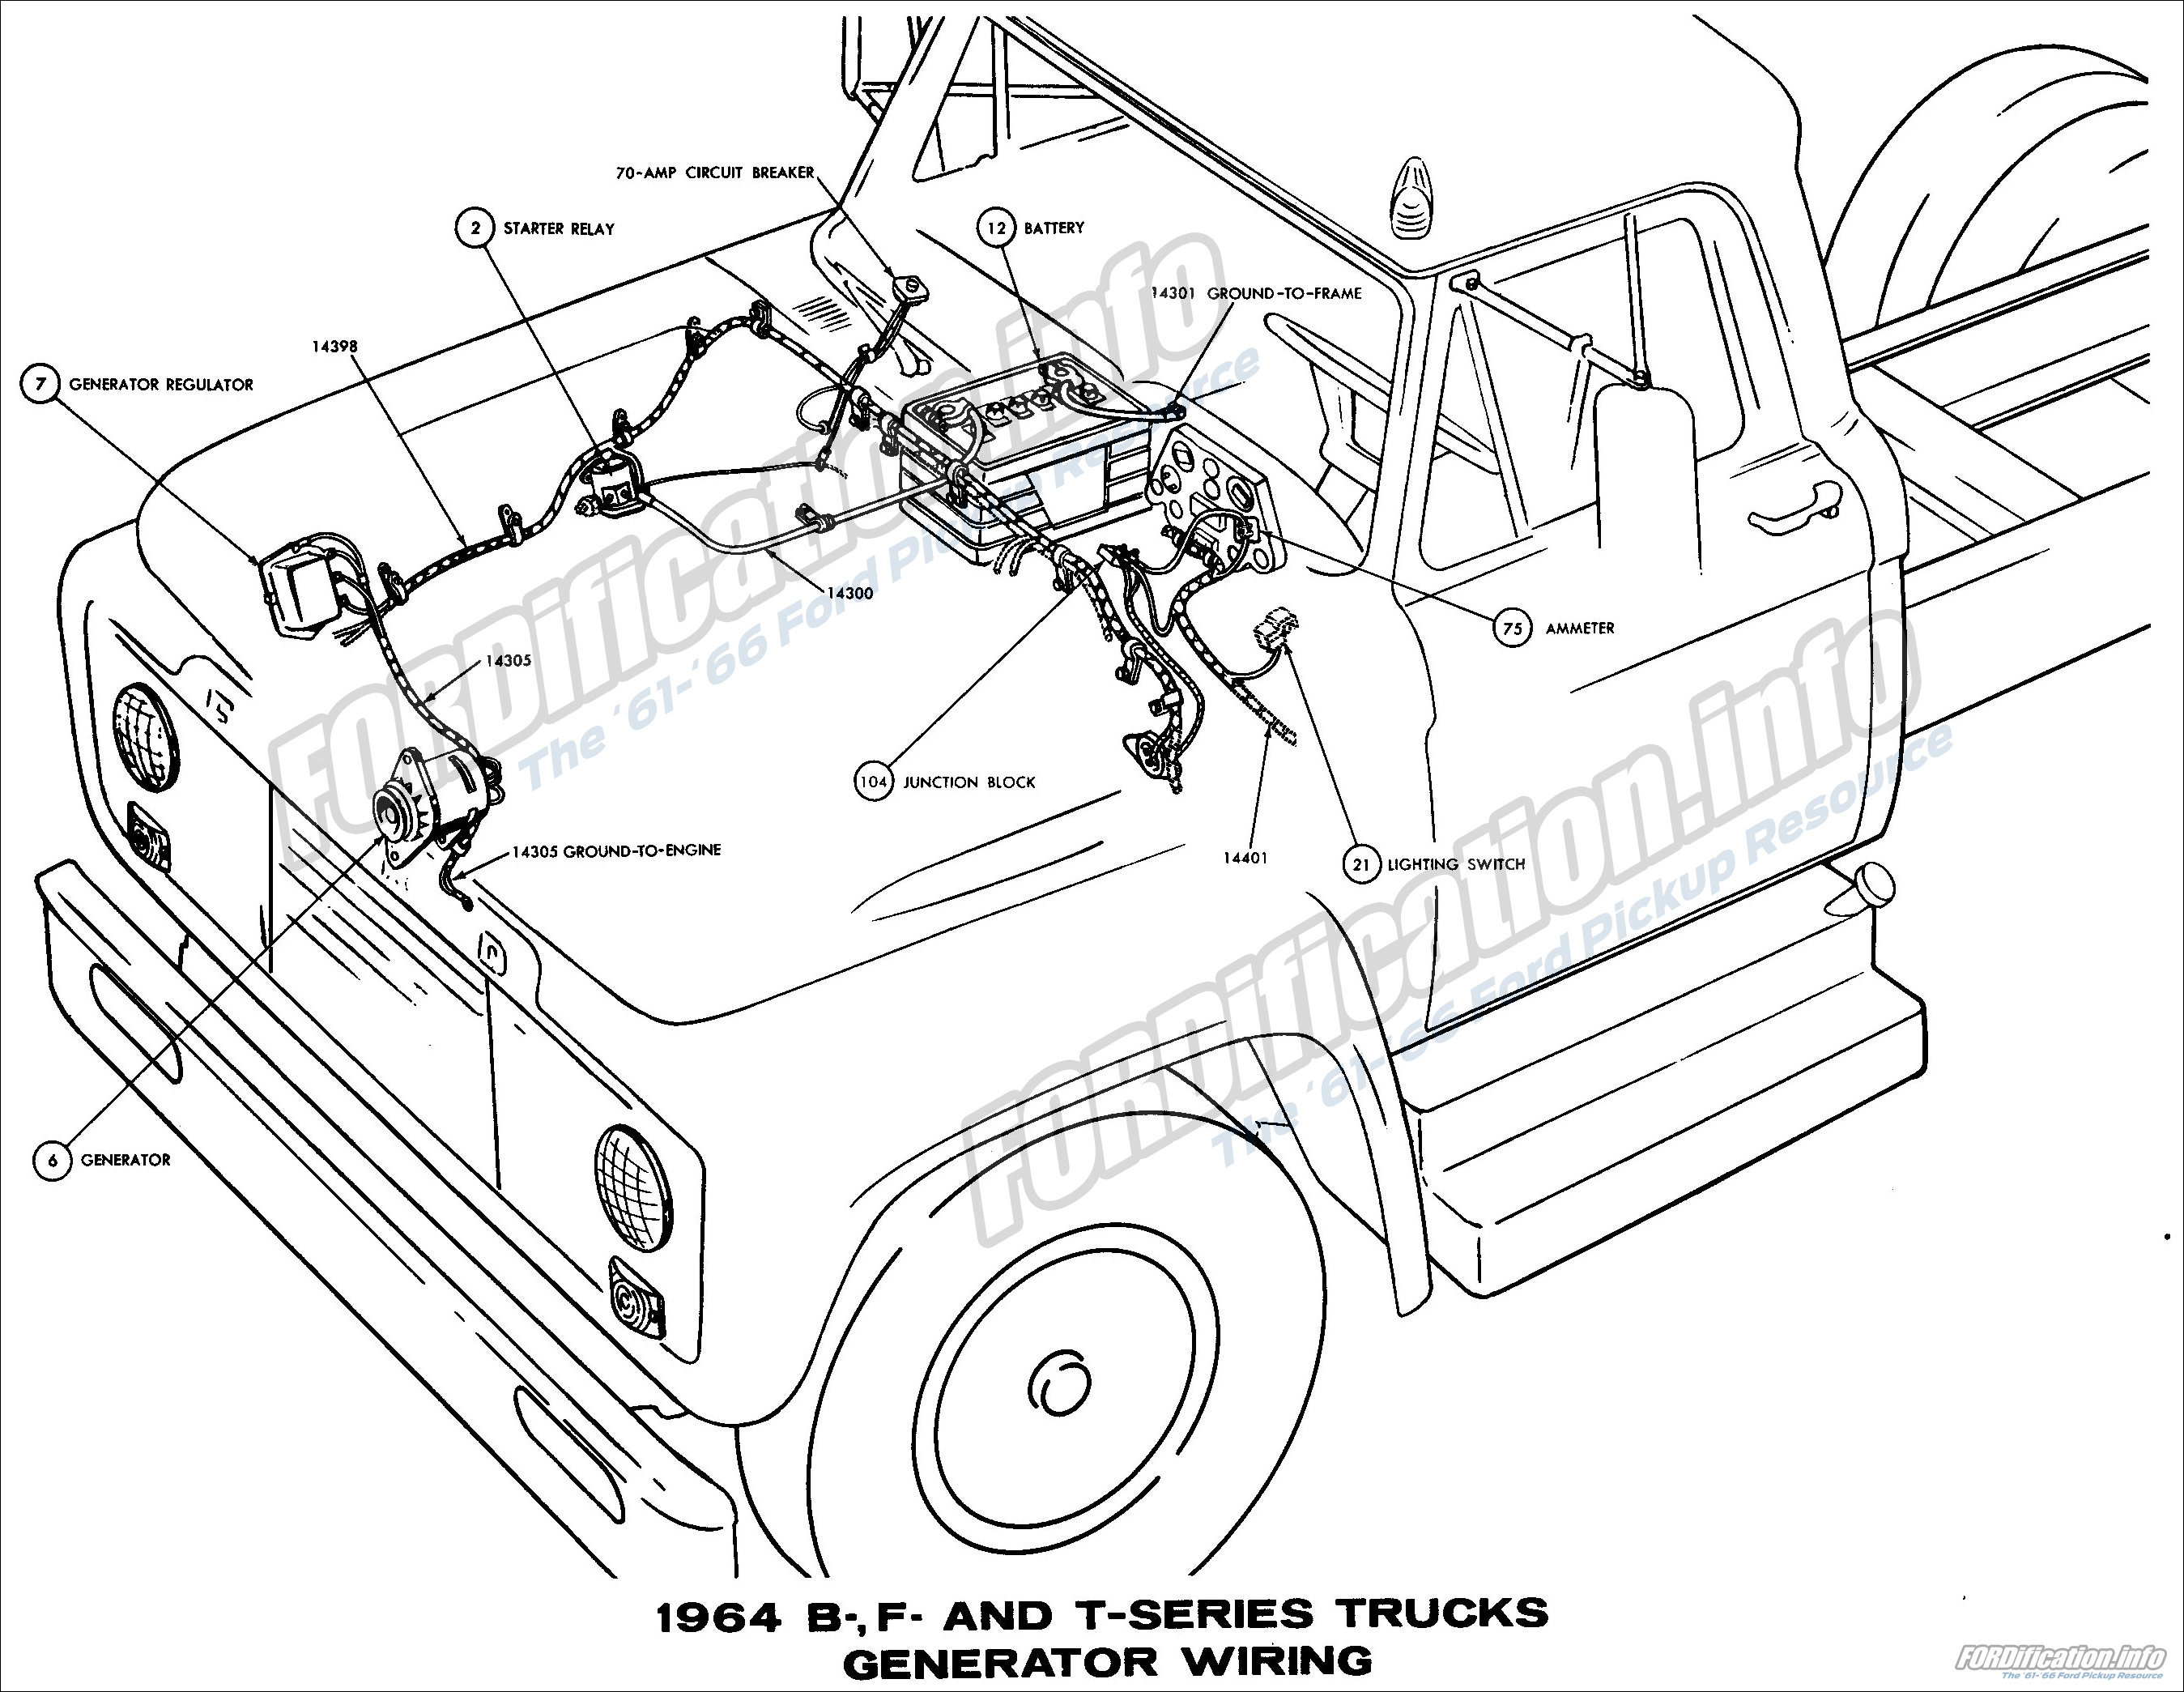 Ford Truck Generator Wiring Diagram Books Of 1939 1964 Diagrams Fordification Info The 61 66 Rh